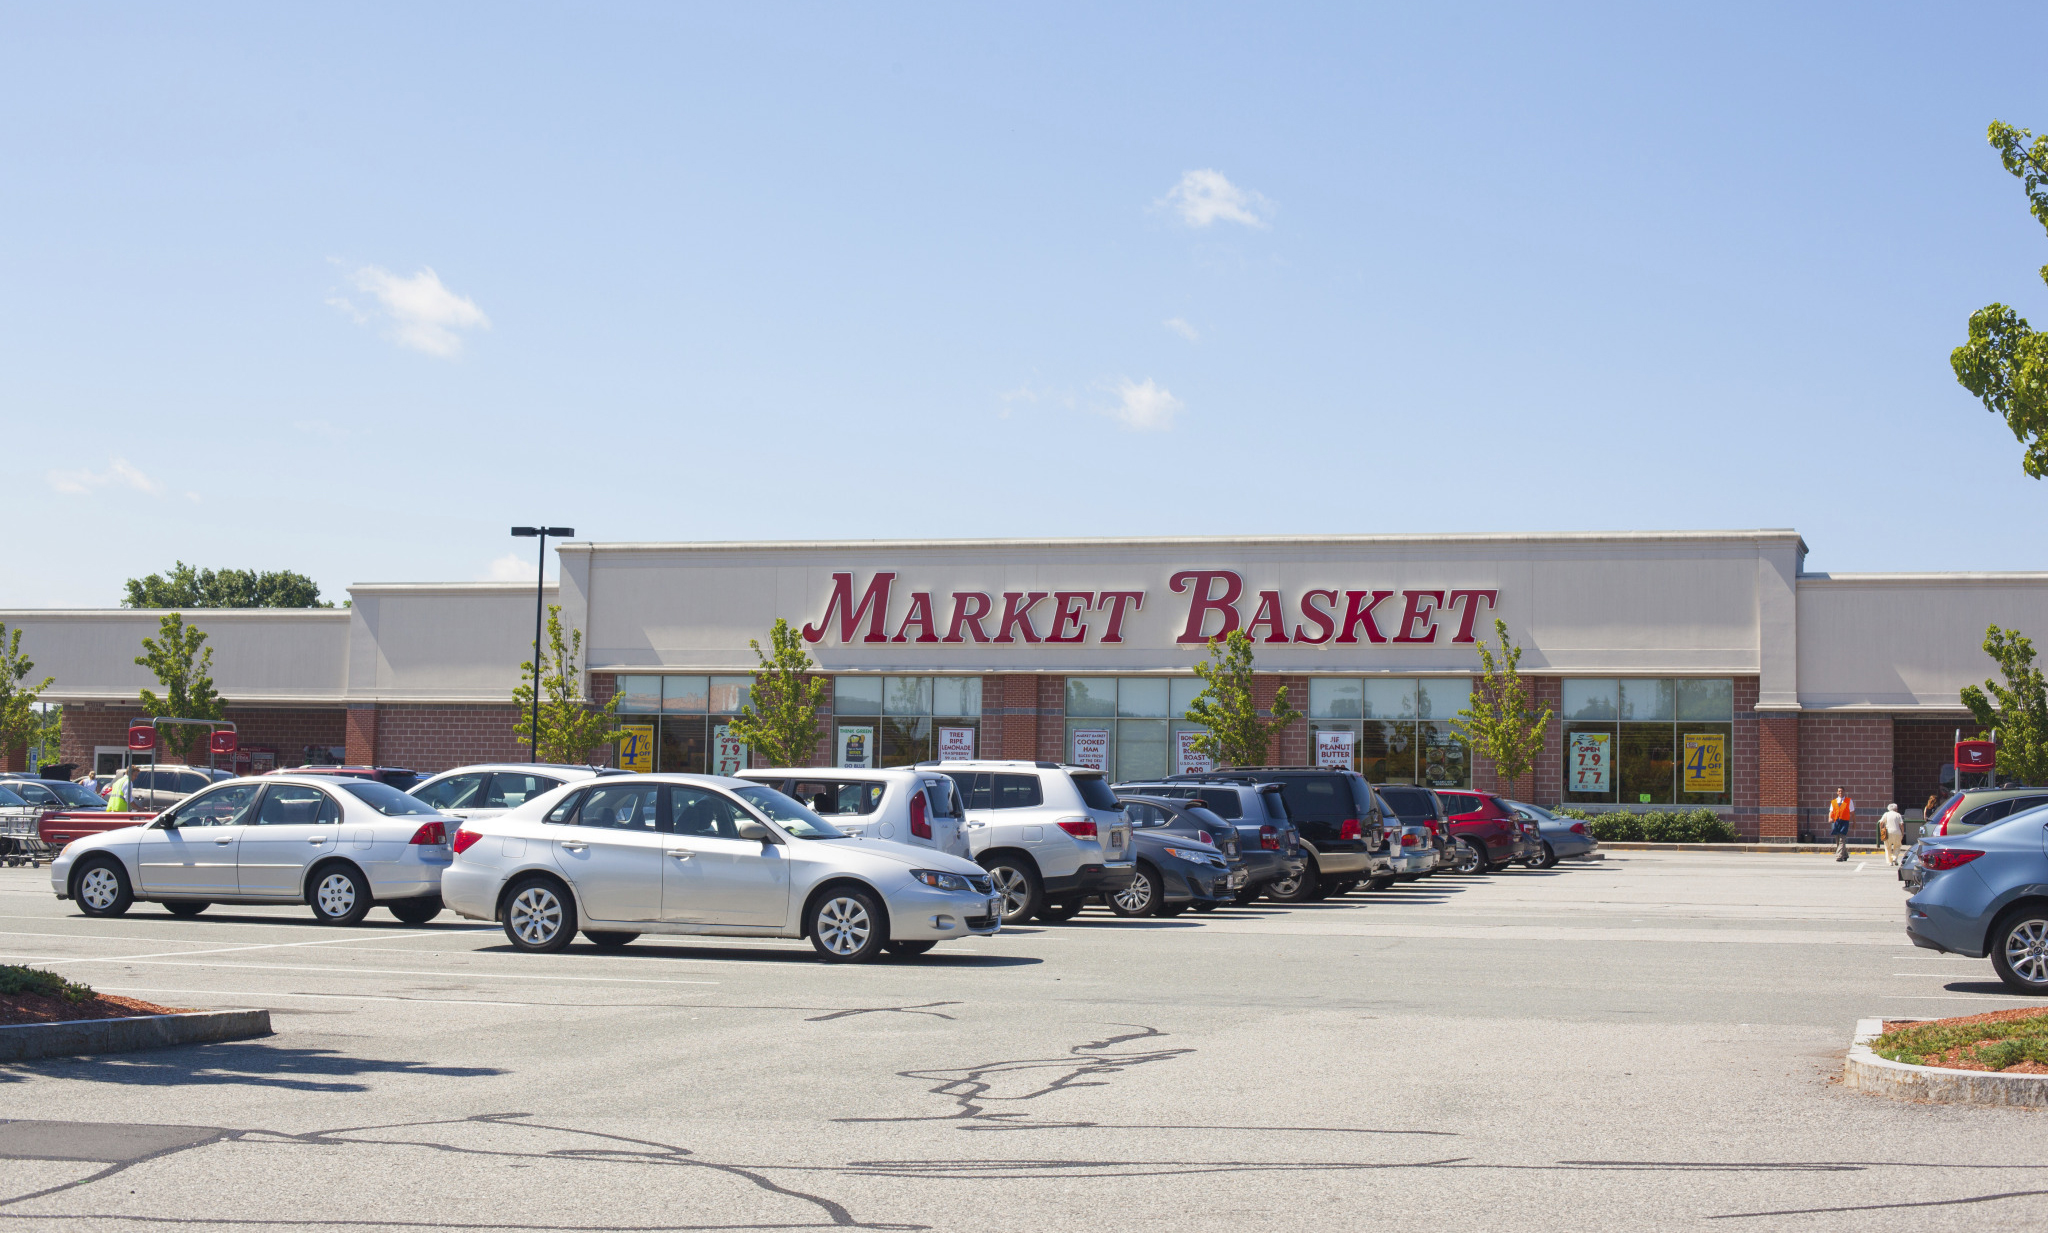 Image via  Market Basket website